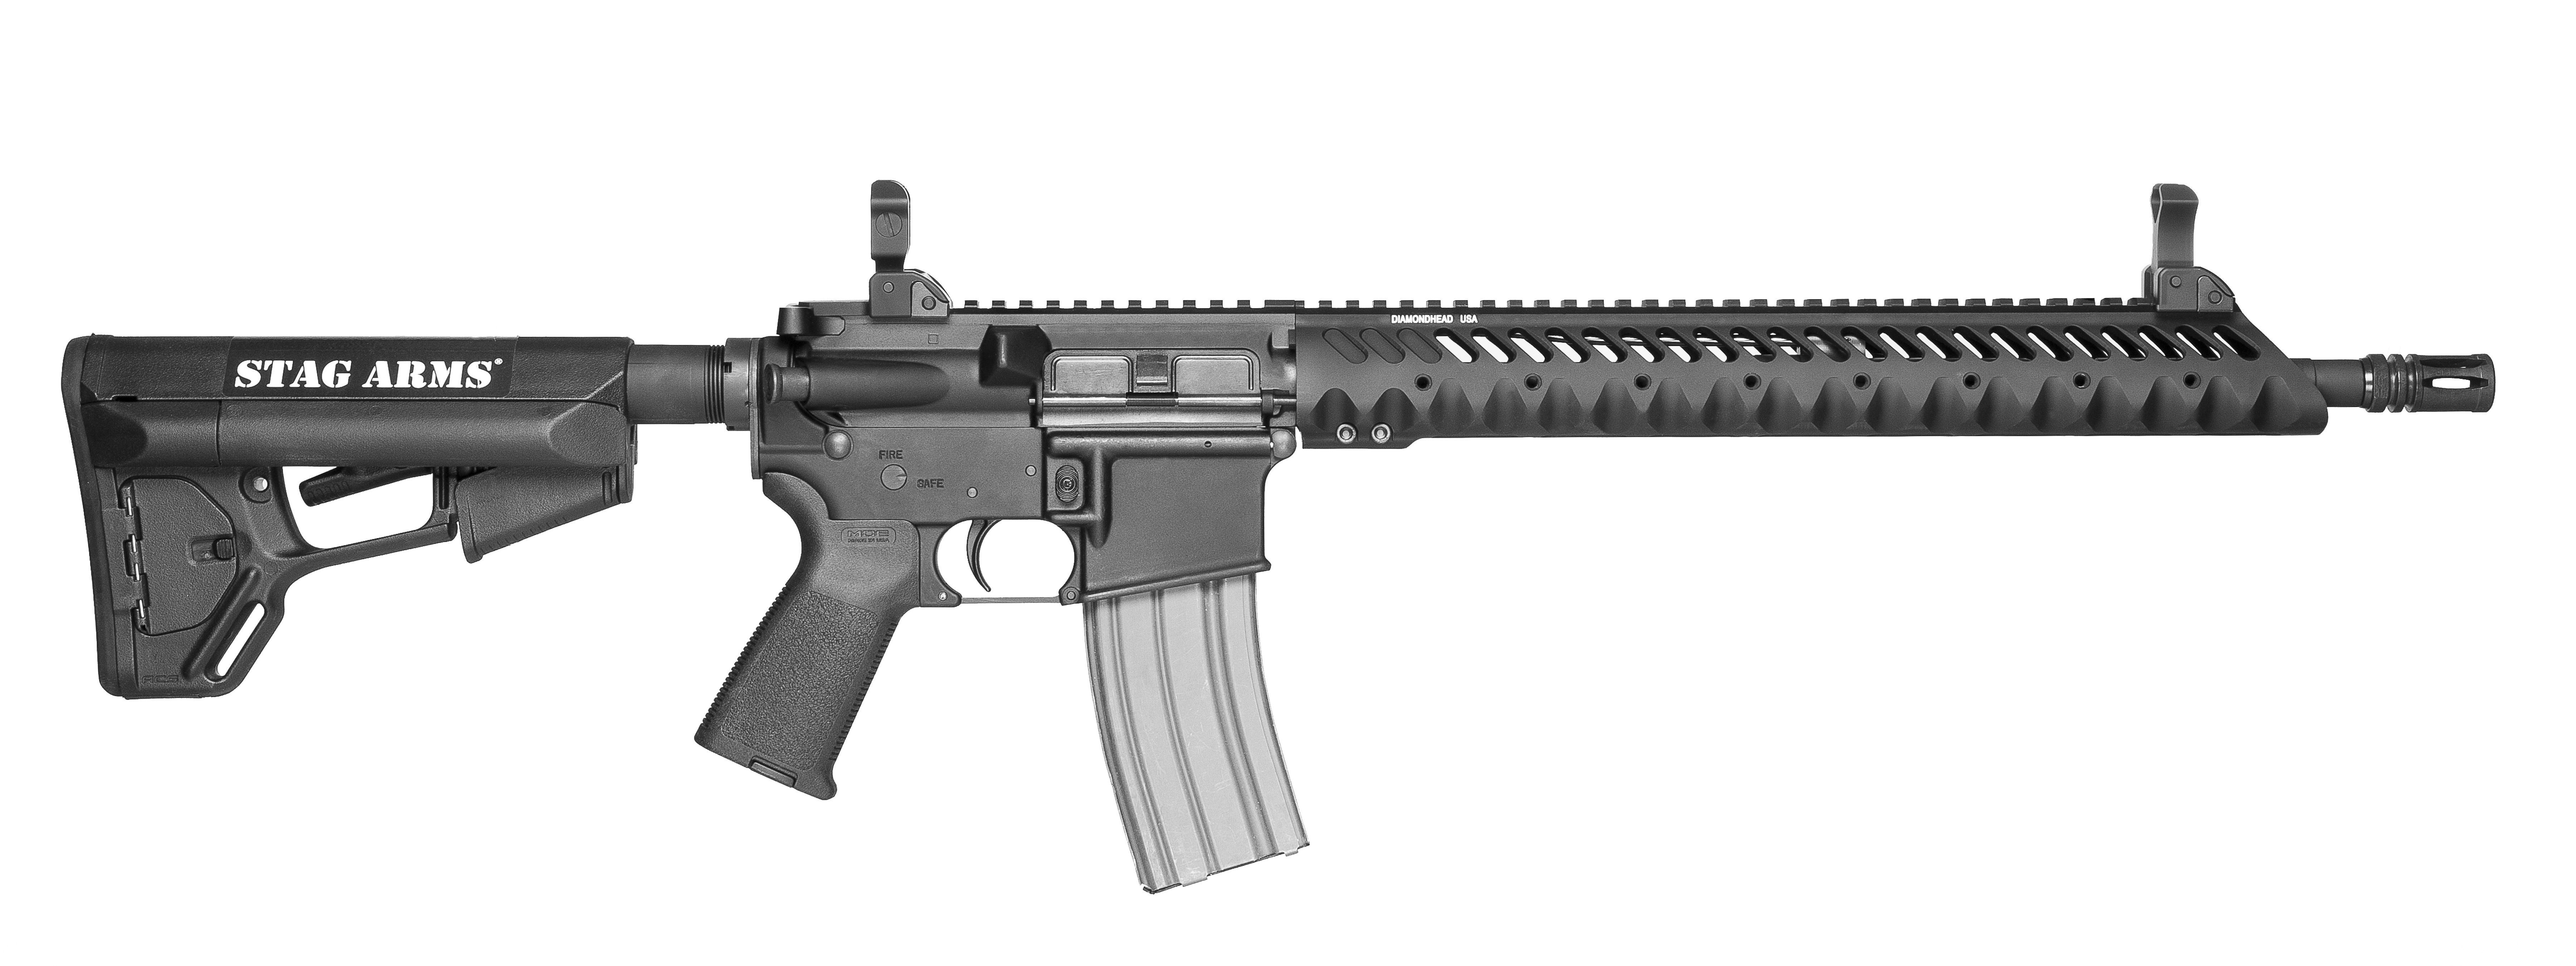 Stag-Arms-Model-3TM